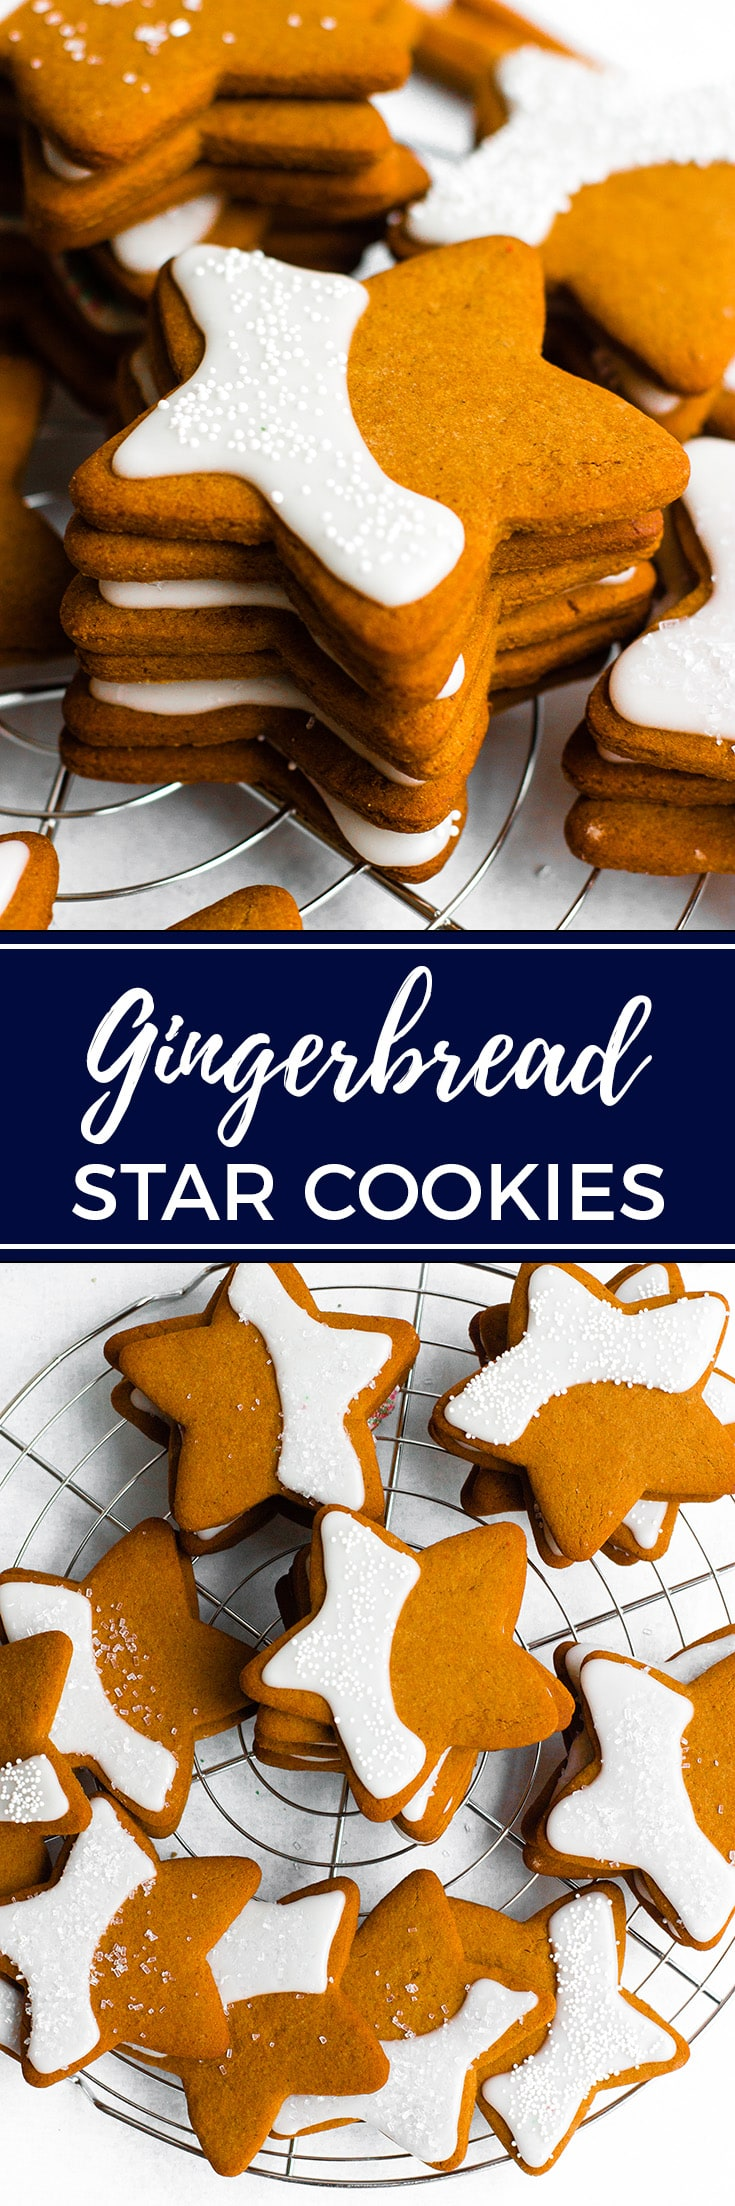 Gingerbread star cookies   A Christmas tradition with slightly crisp edges, chewy centers, and the warm flavors of molasses, brown sugar, and spices. #christmascookies #gingerbread